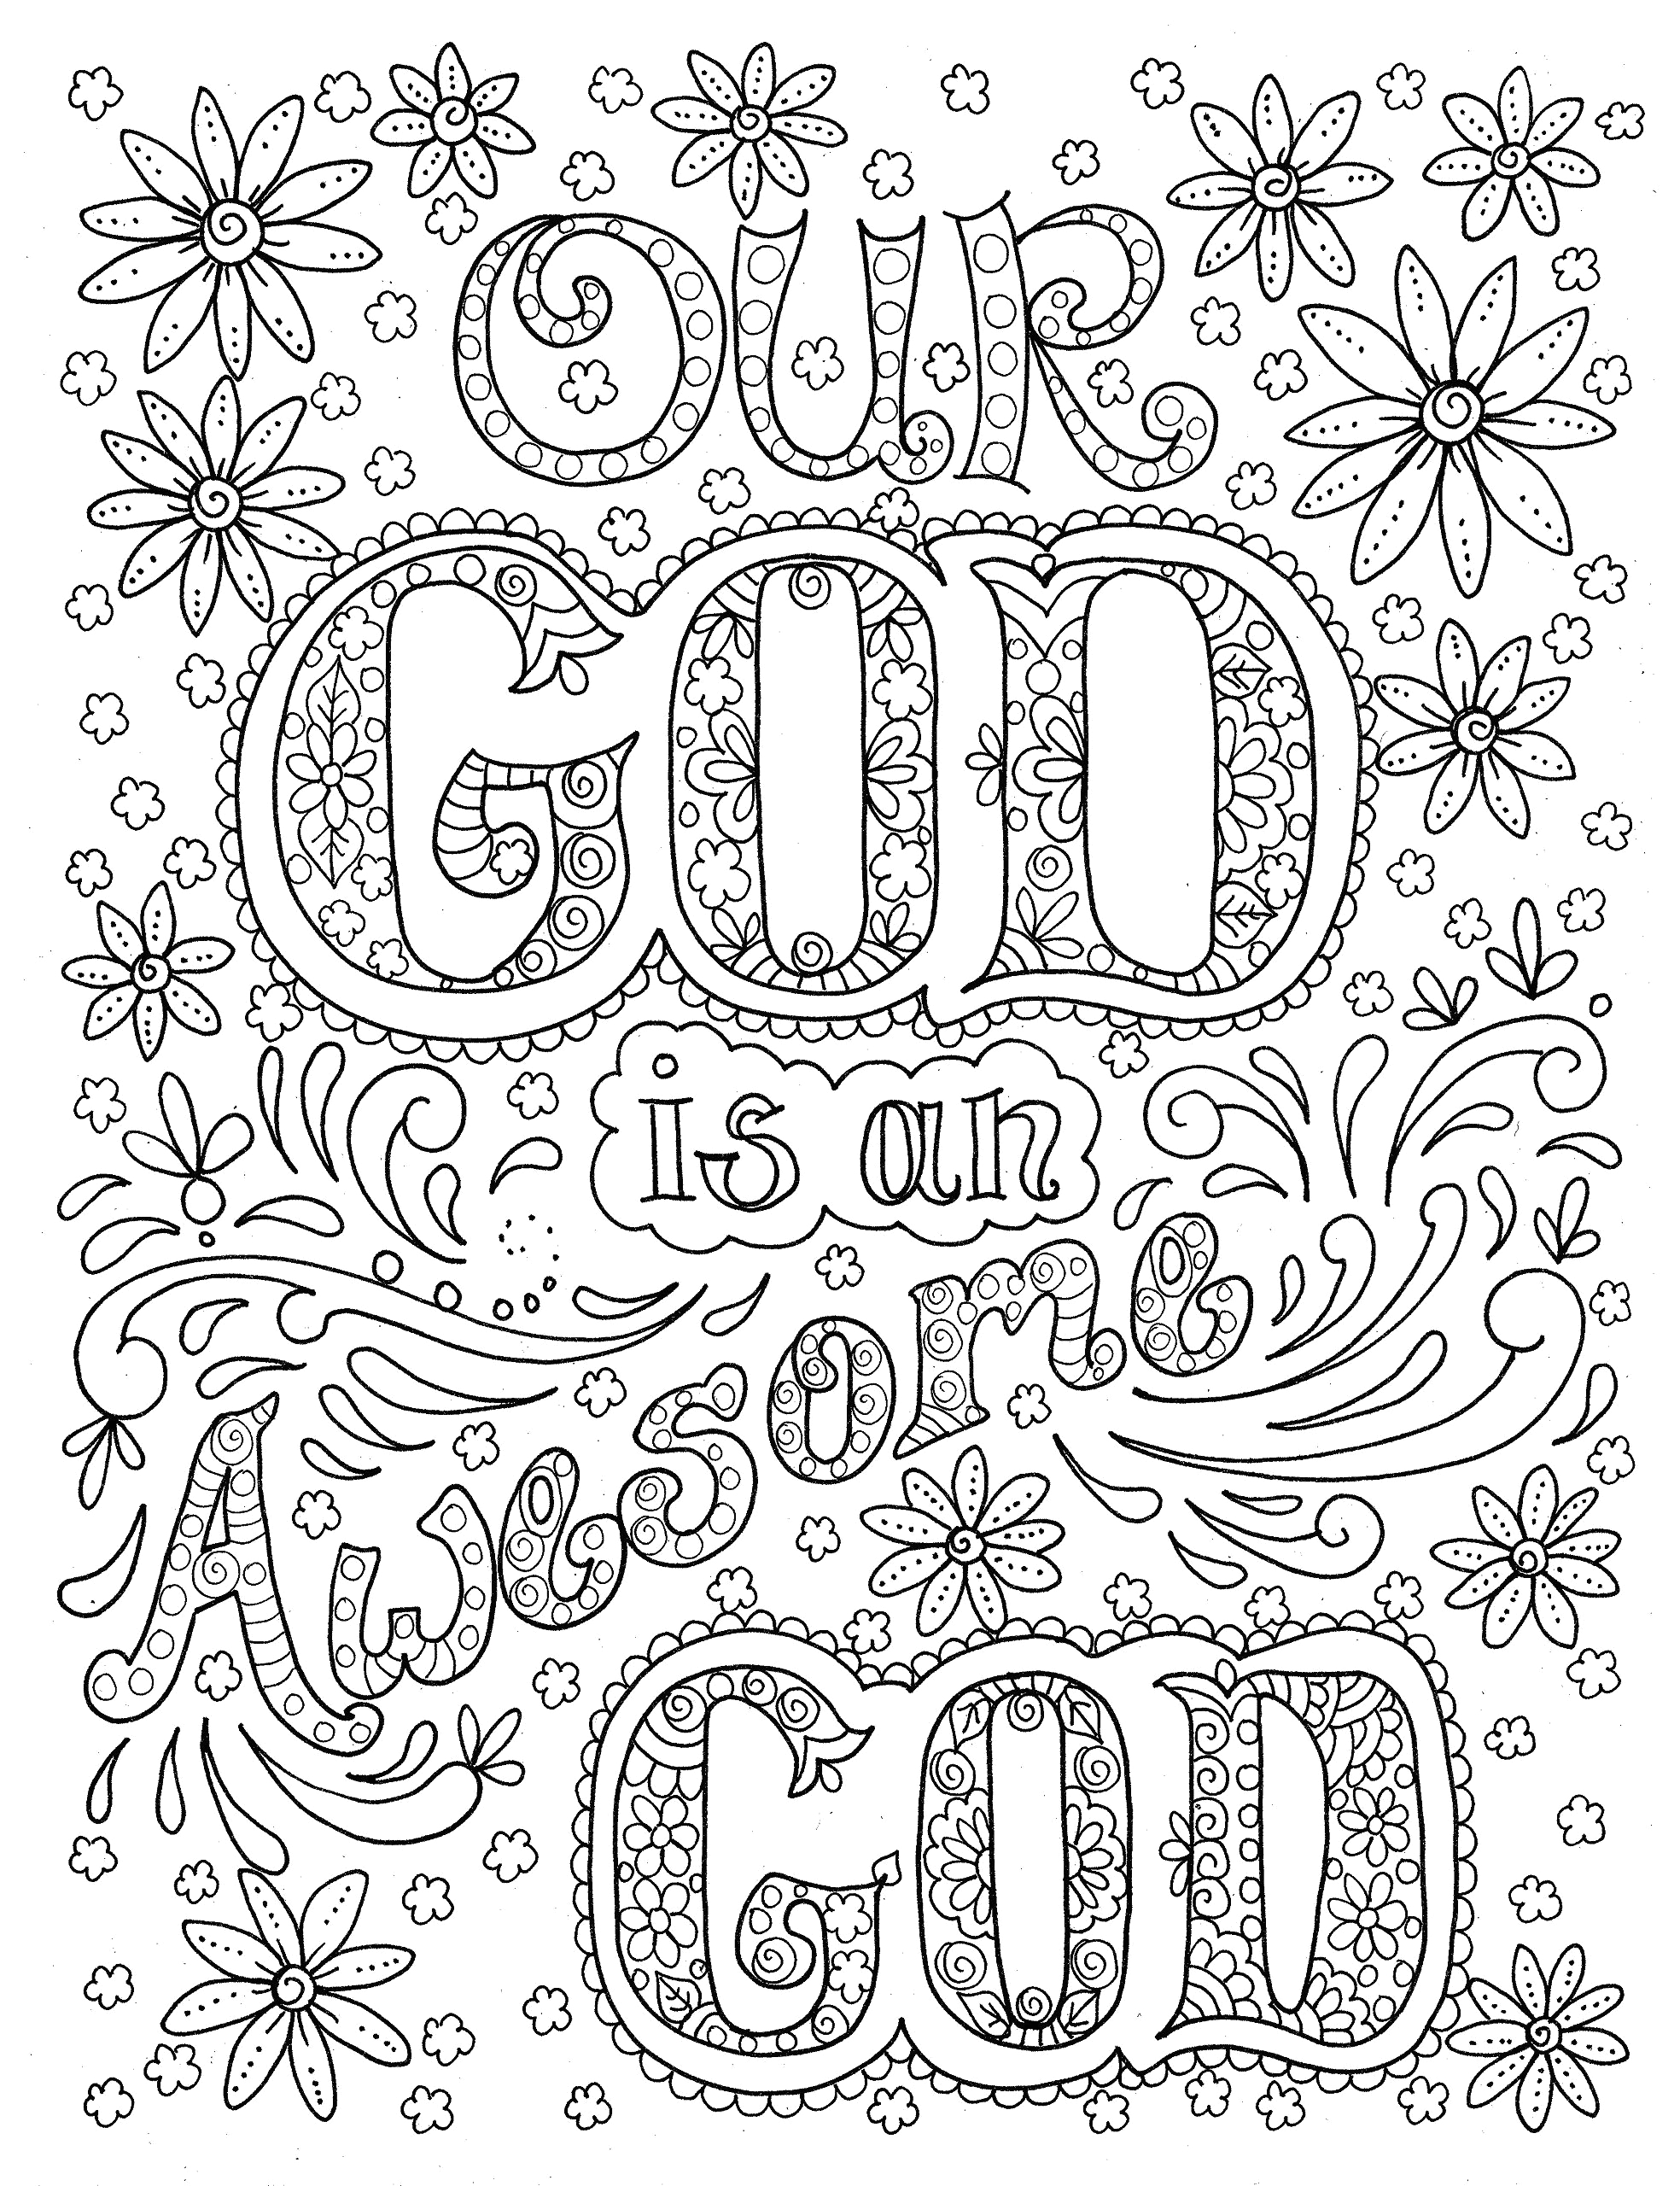 Free Printable Coloring Pages for Adults Bible Verses Pin On Worship 2 Color